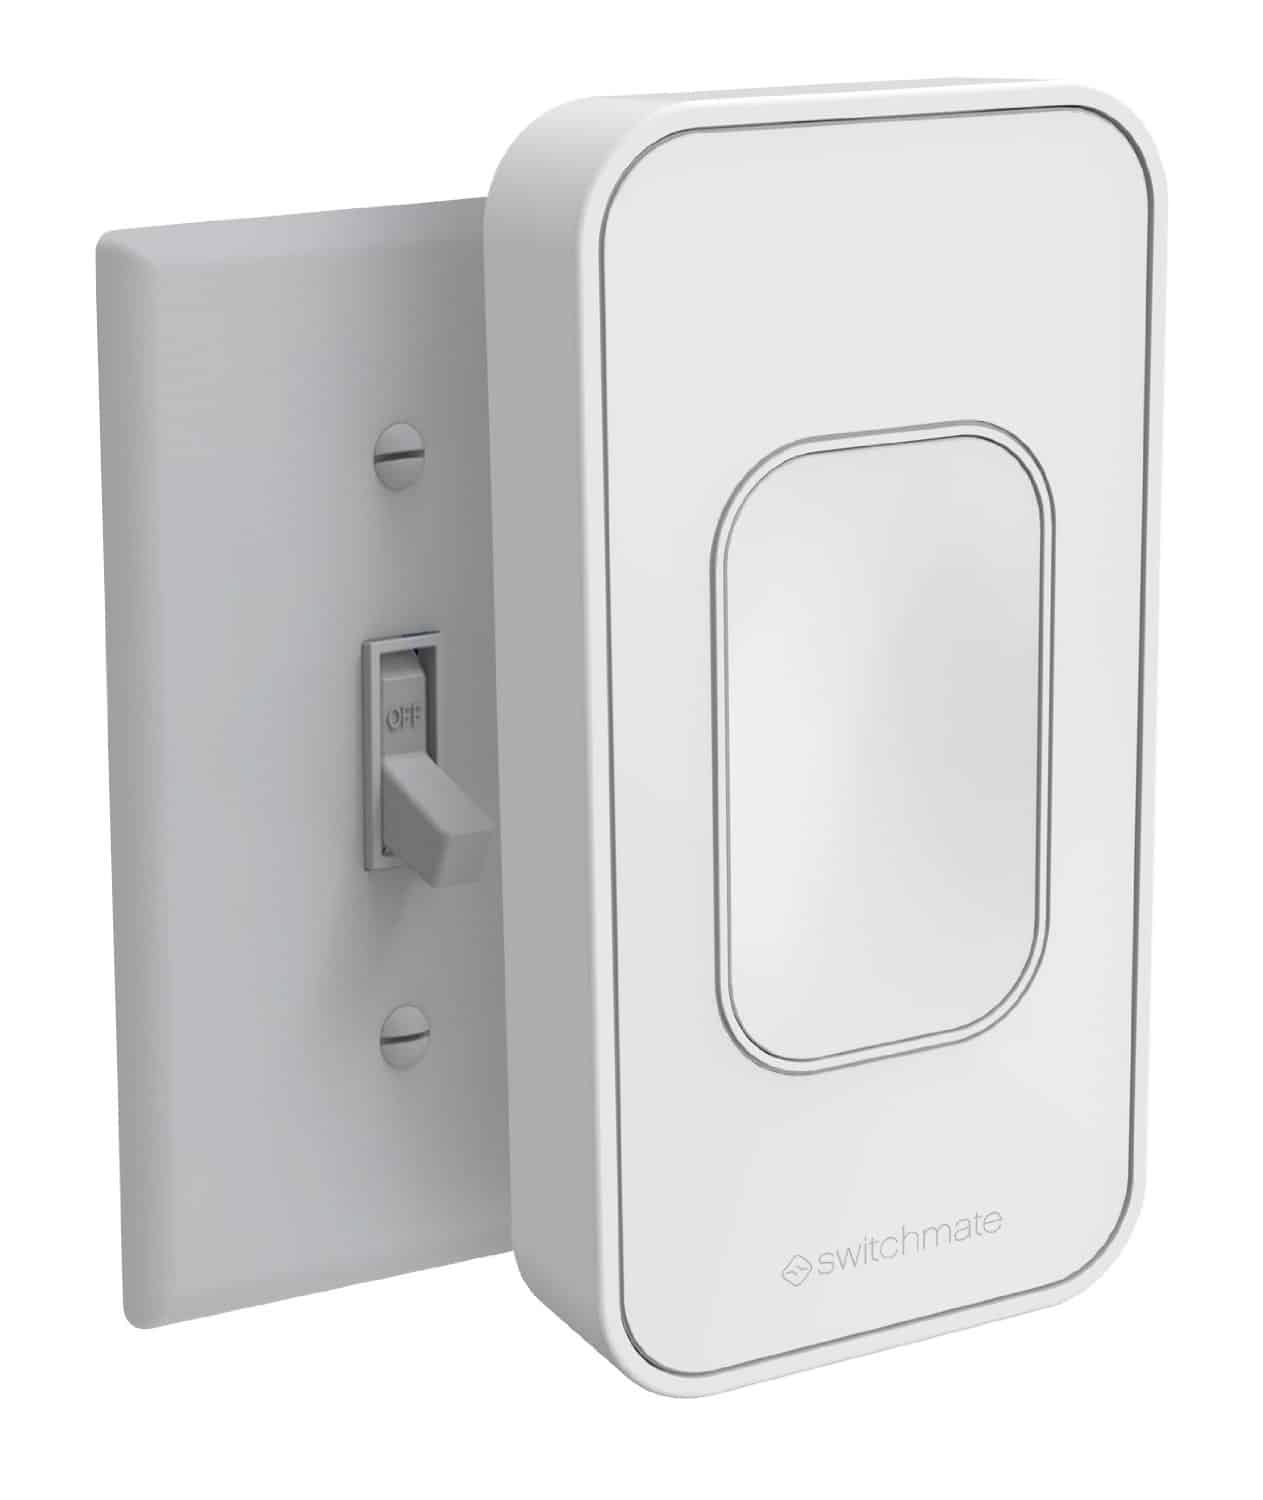 Home Light Switches: Switchmate TSM002W One Second Smart Home Light Switch